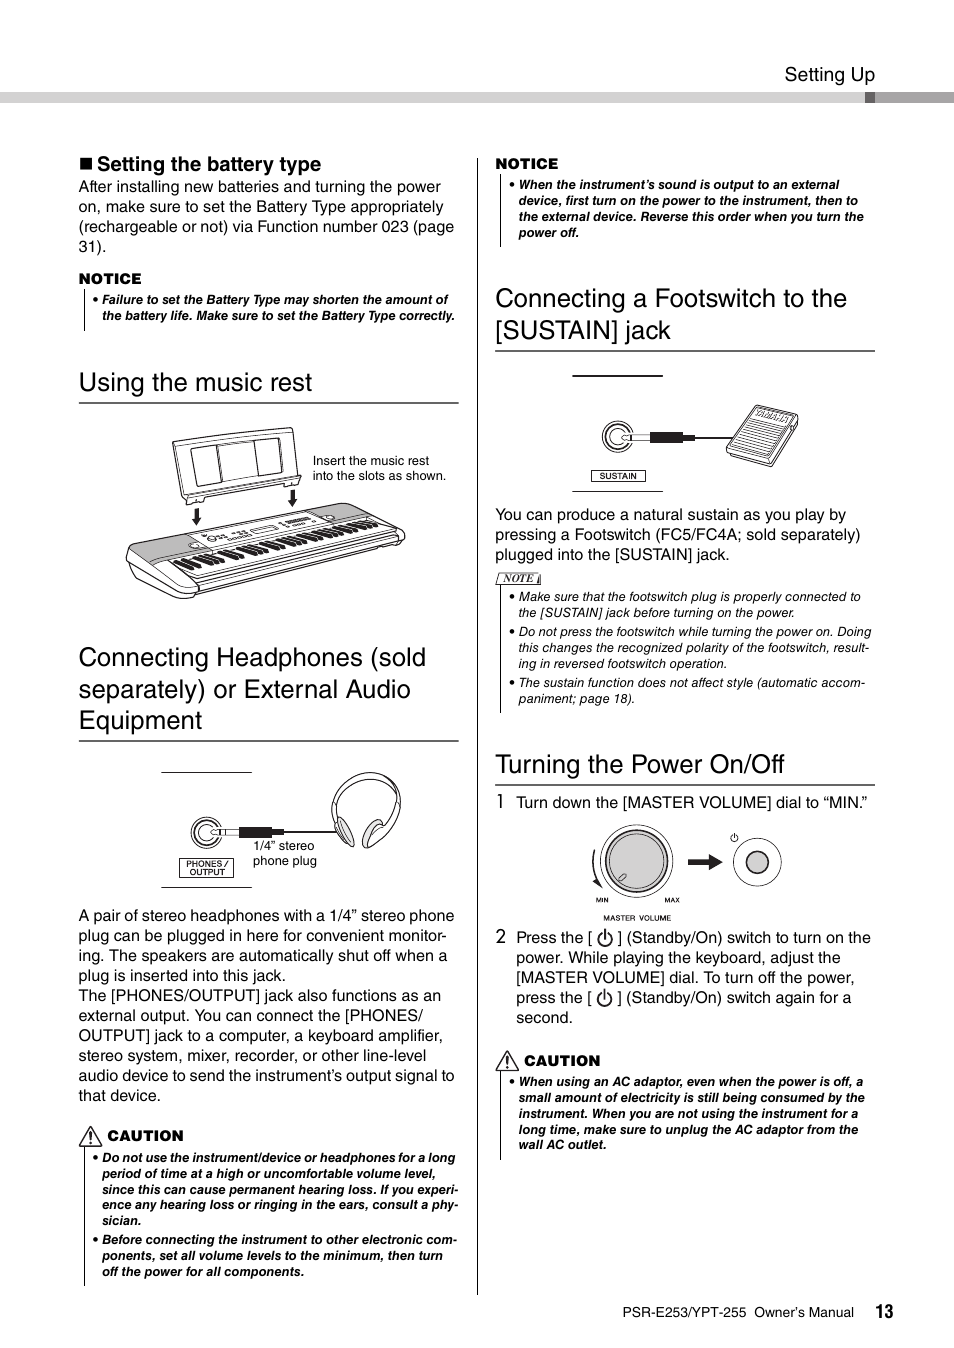 Using The Music Rest Connecting A Footswitch To Sustain Jack Wiring 1 4 Out Put Turning Power On Off Yamaha Psr E253 User Manual Page 13 48